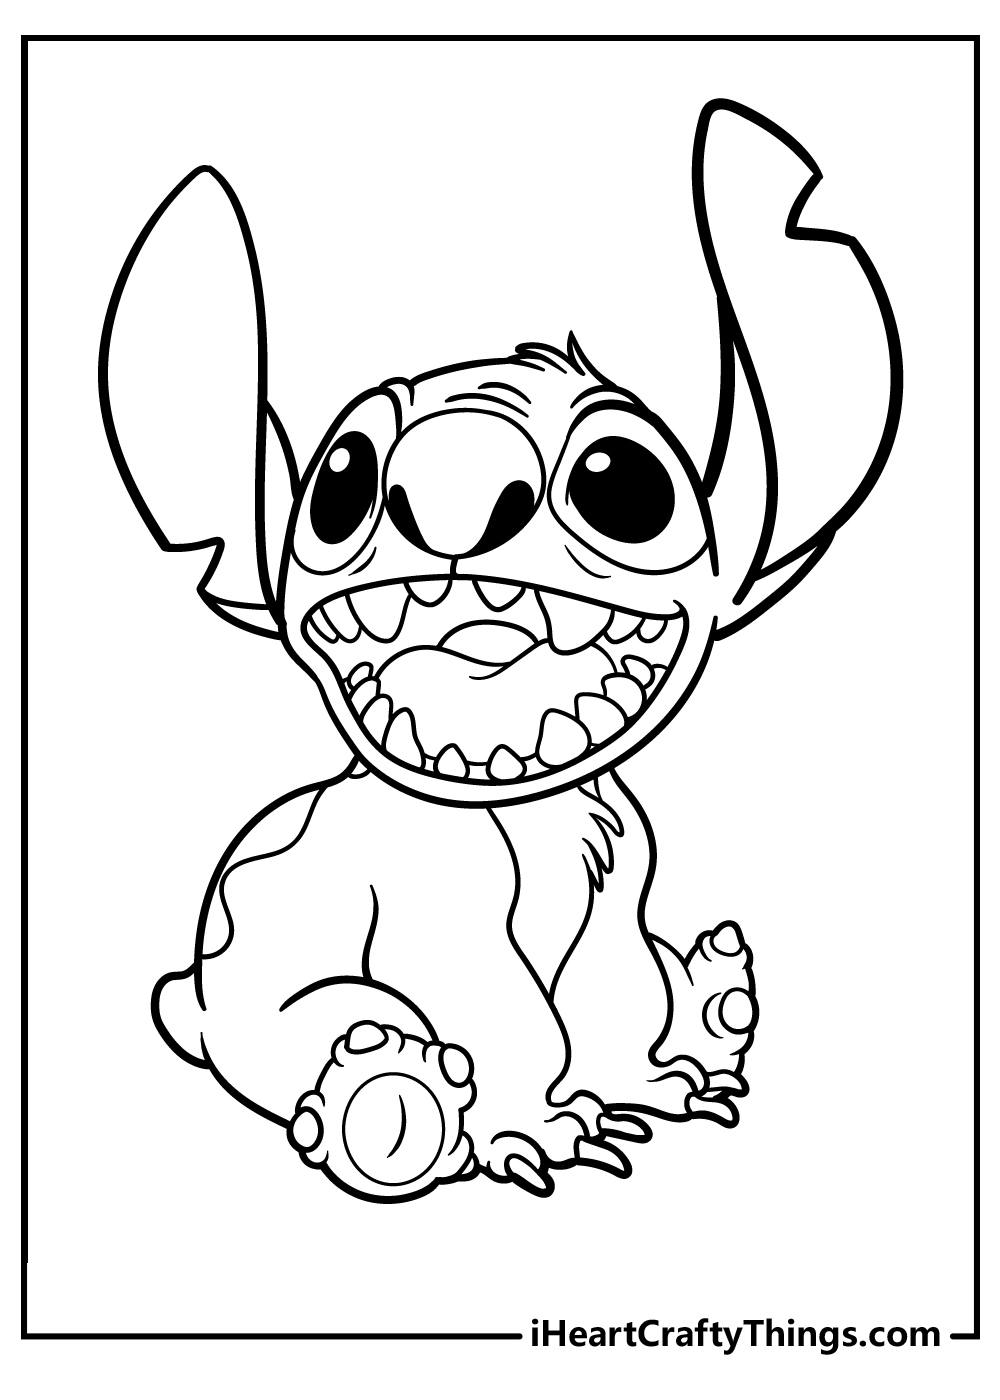 lilo stitch coloring updated lilostitch sunset oange christmas color by number fre frozen coloring pages Lilo Coloring Page